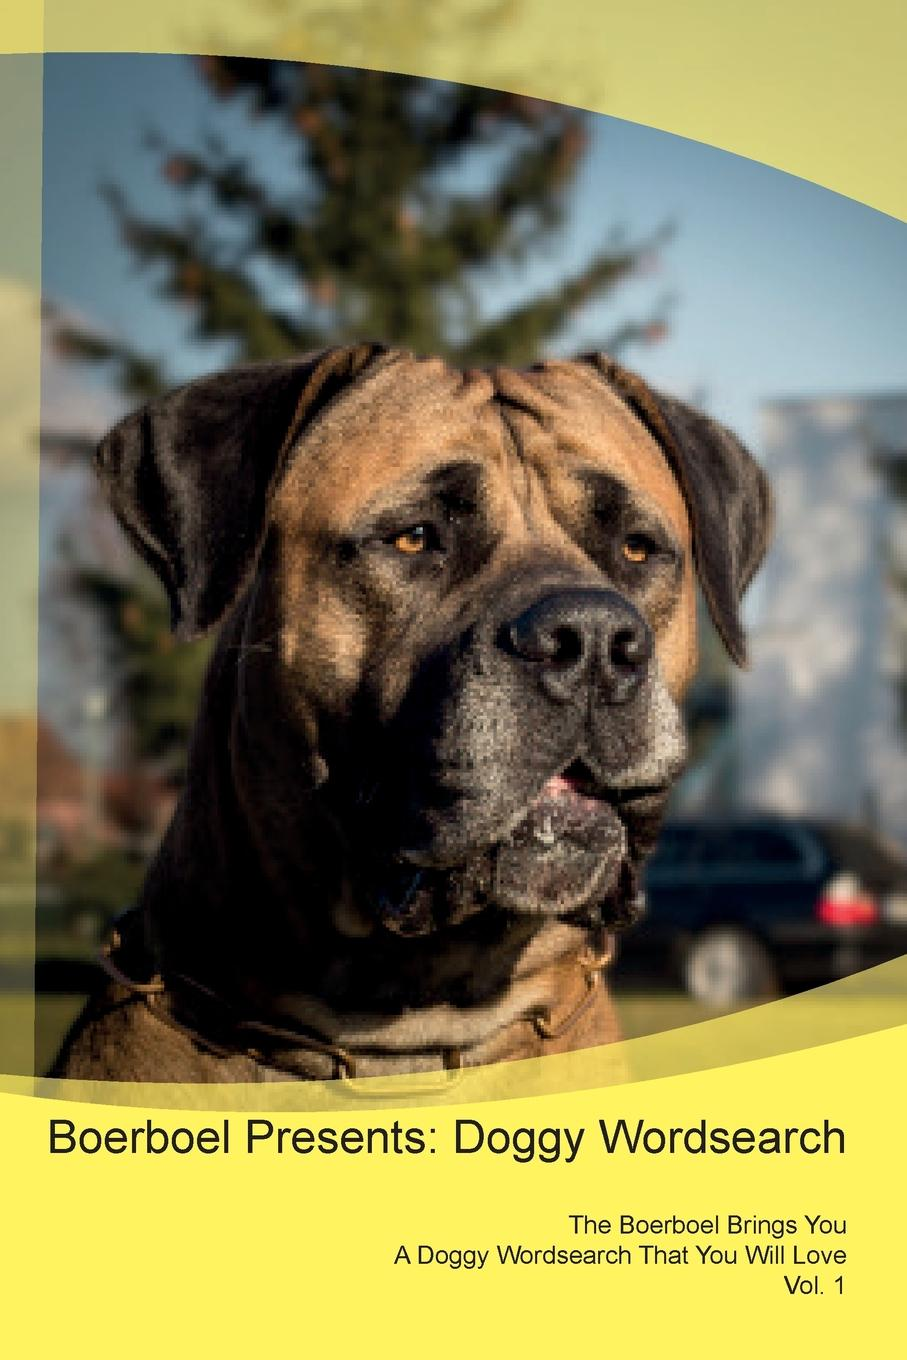 Фото - Doggy Puzzles Boerboel Presents. Doggy Wordsearch The Boerboel Brings You A Doggy Wordsearch That You Will Love Vol. 1 harry holstone boerboel the boerboel dog owner s manual boerboel dog care personality grooming health costs and feeding all included